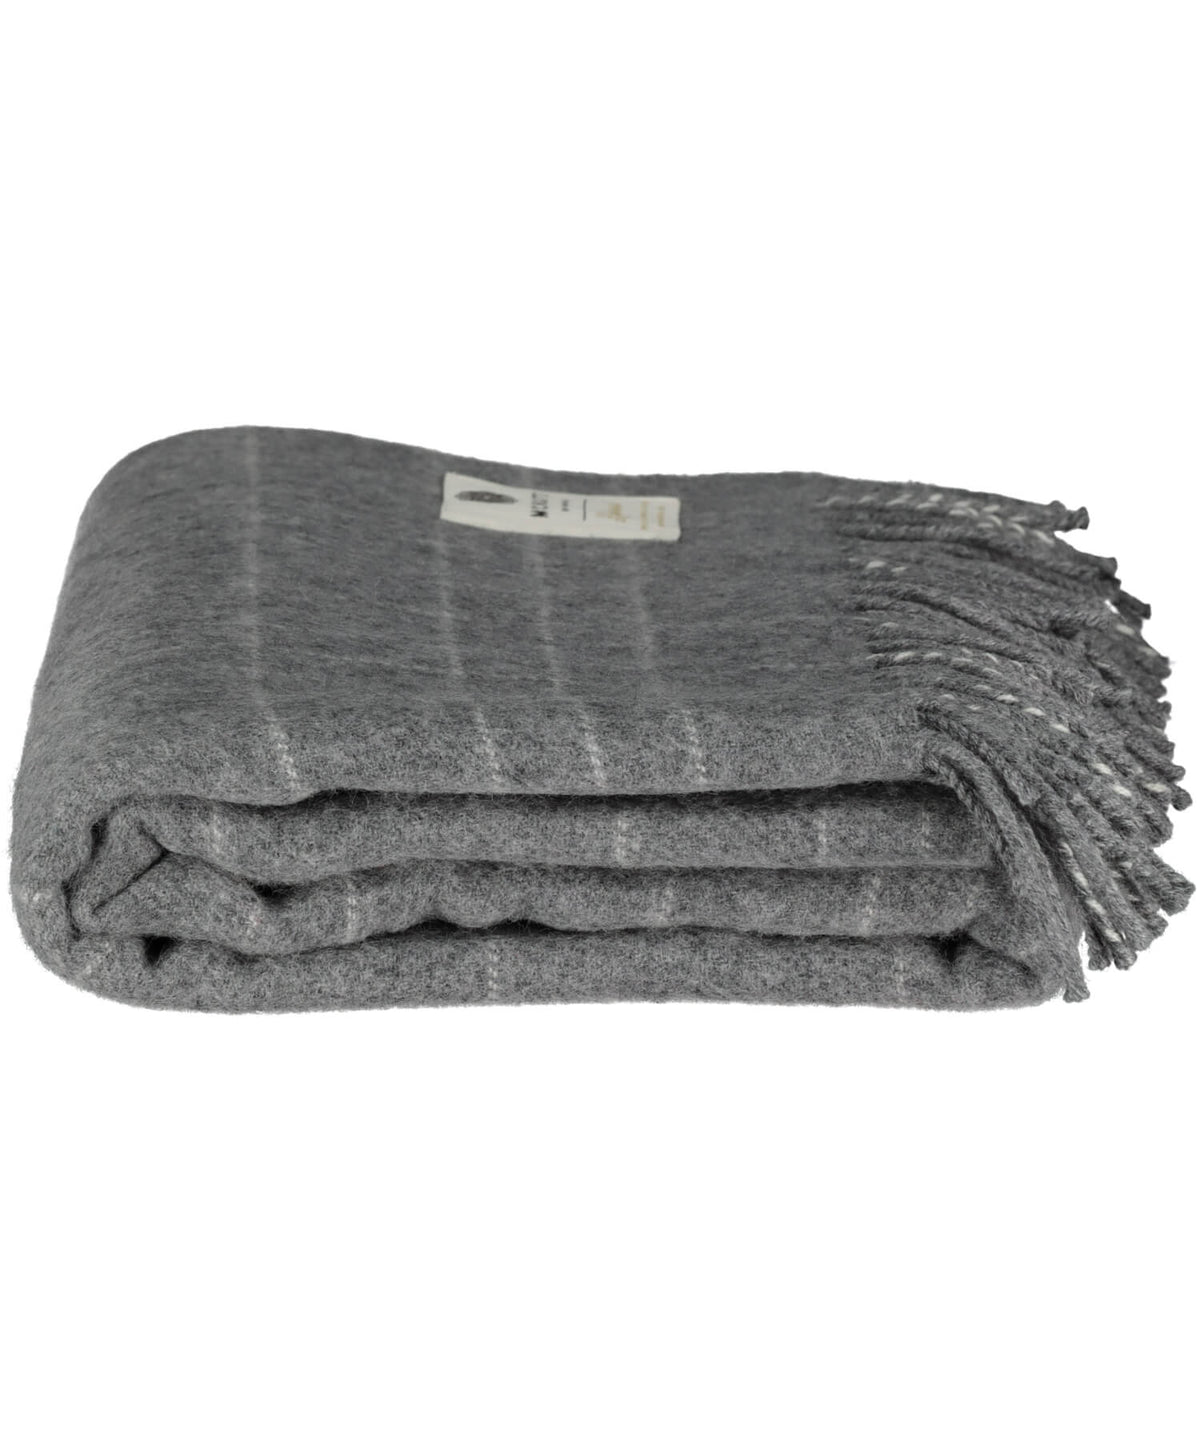 Supersoft Lambswool Throw - Steel Maze - [McNutts] - Throws & Cushions - Irish Gifts